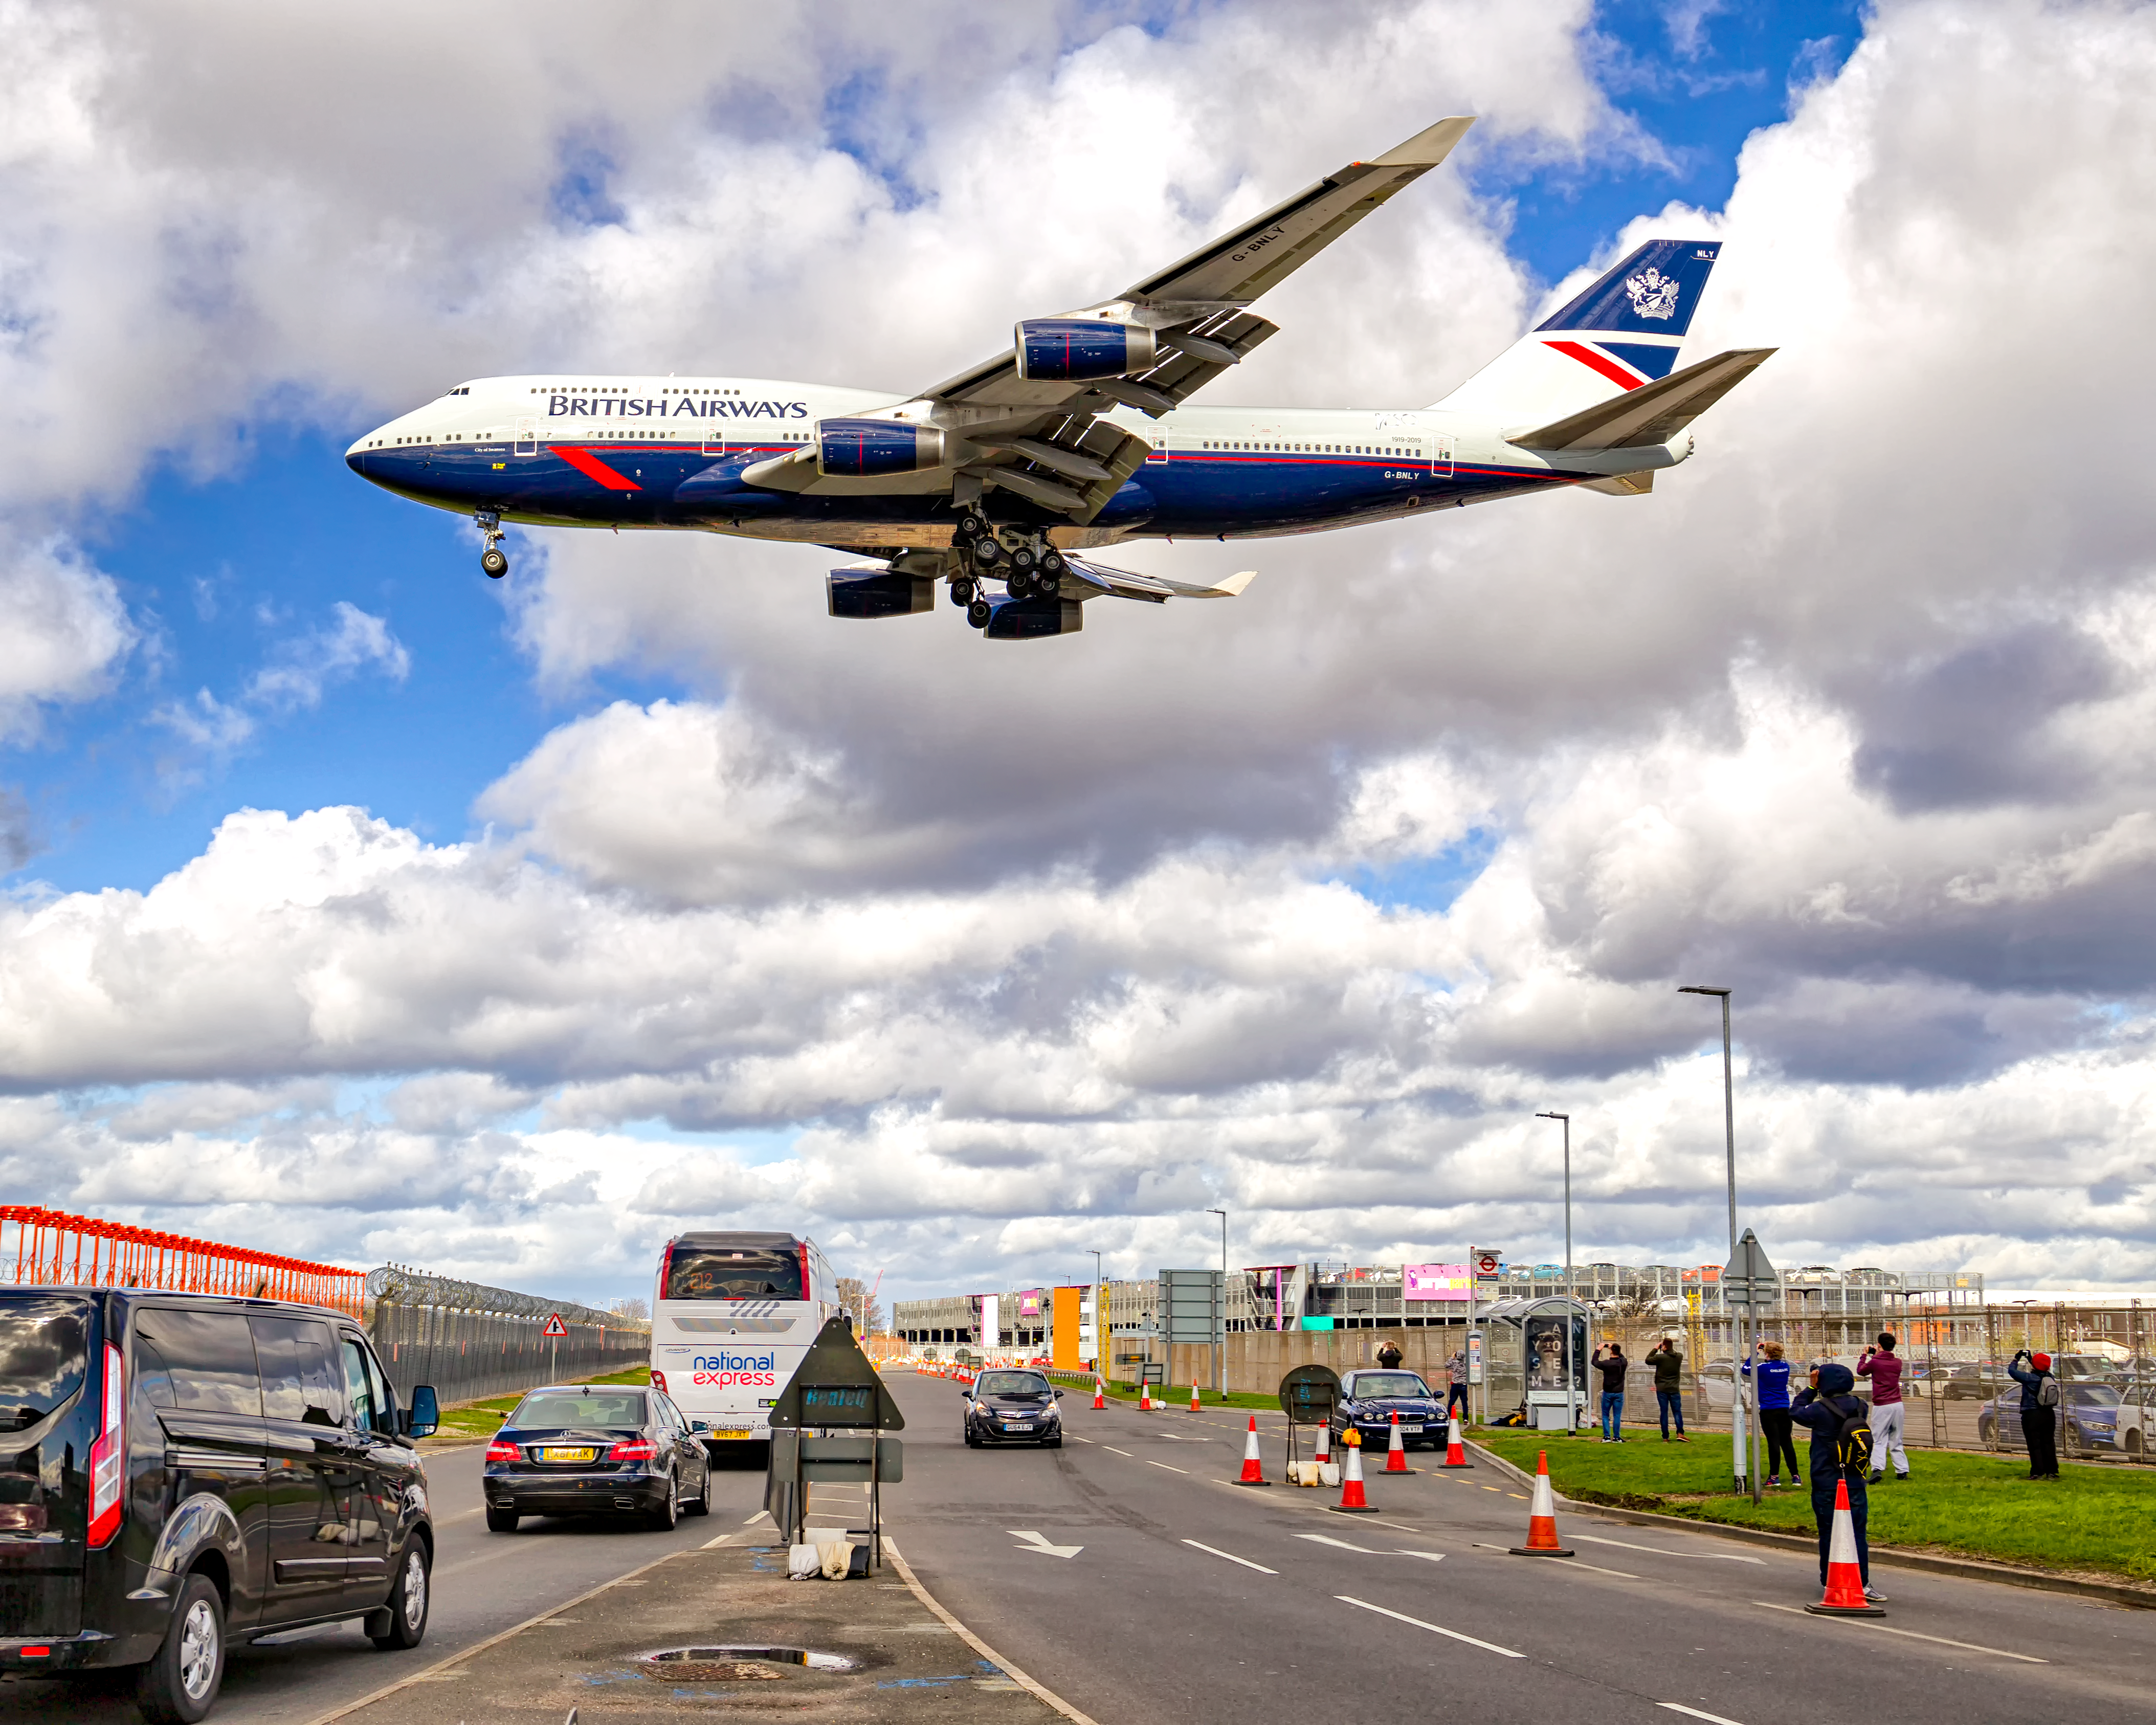 Forecourt Access Charge Announced at Heathrow